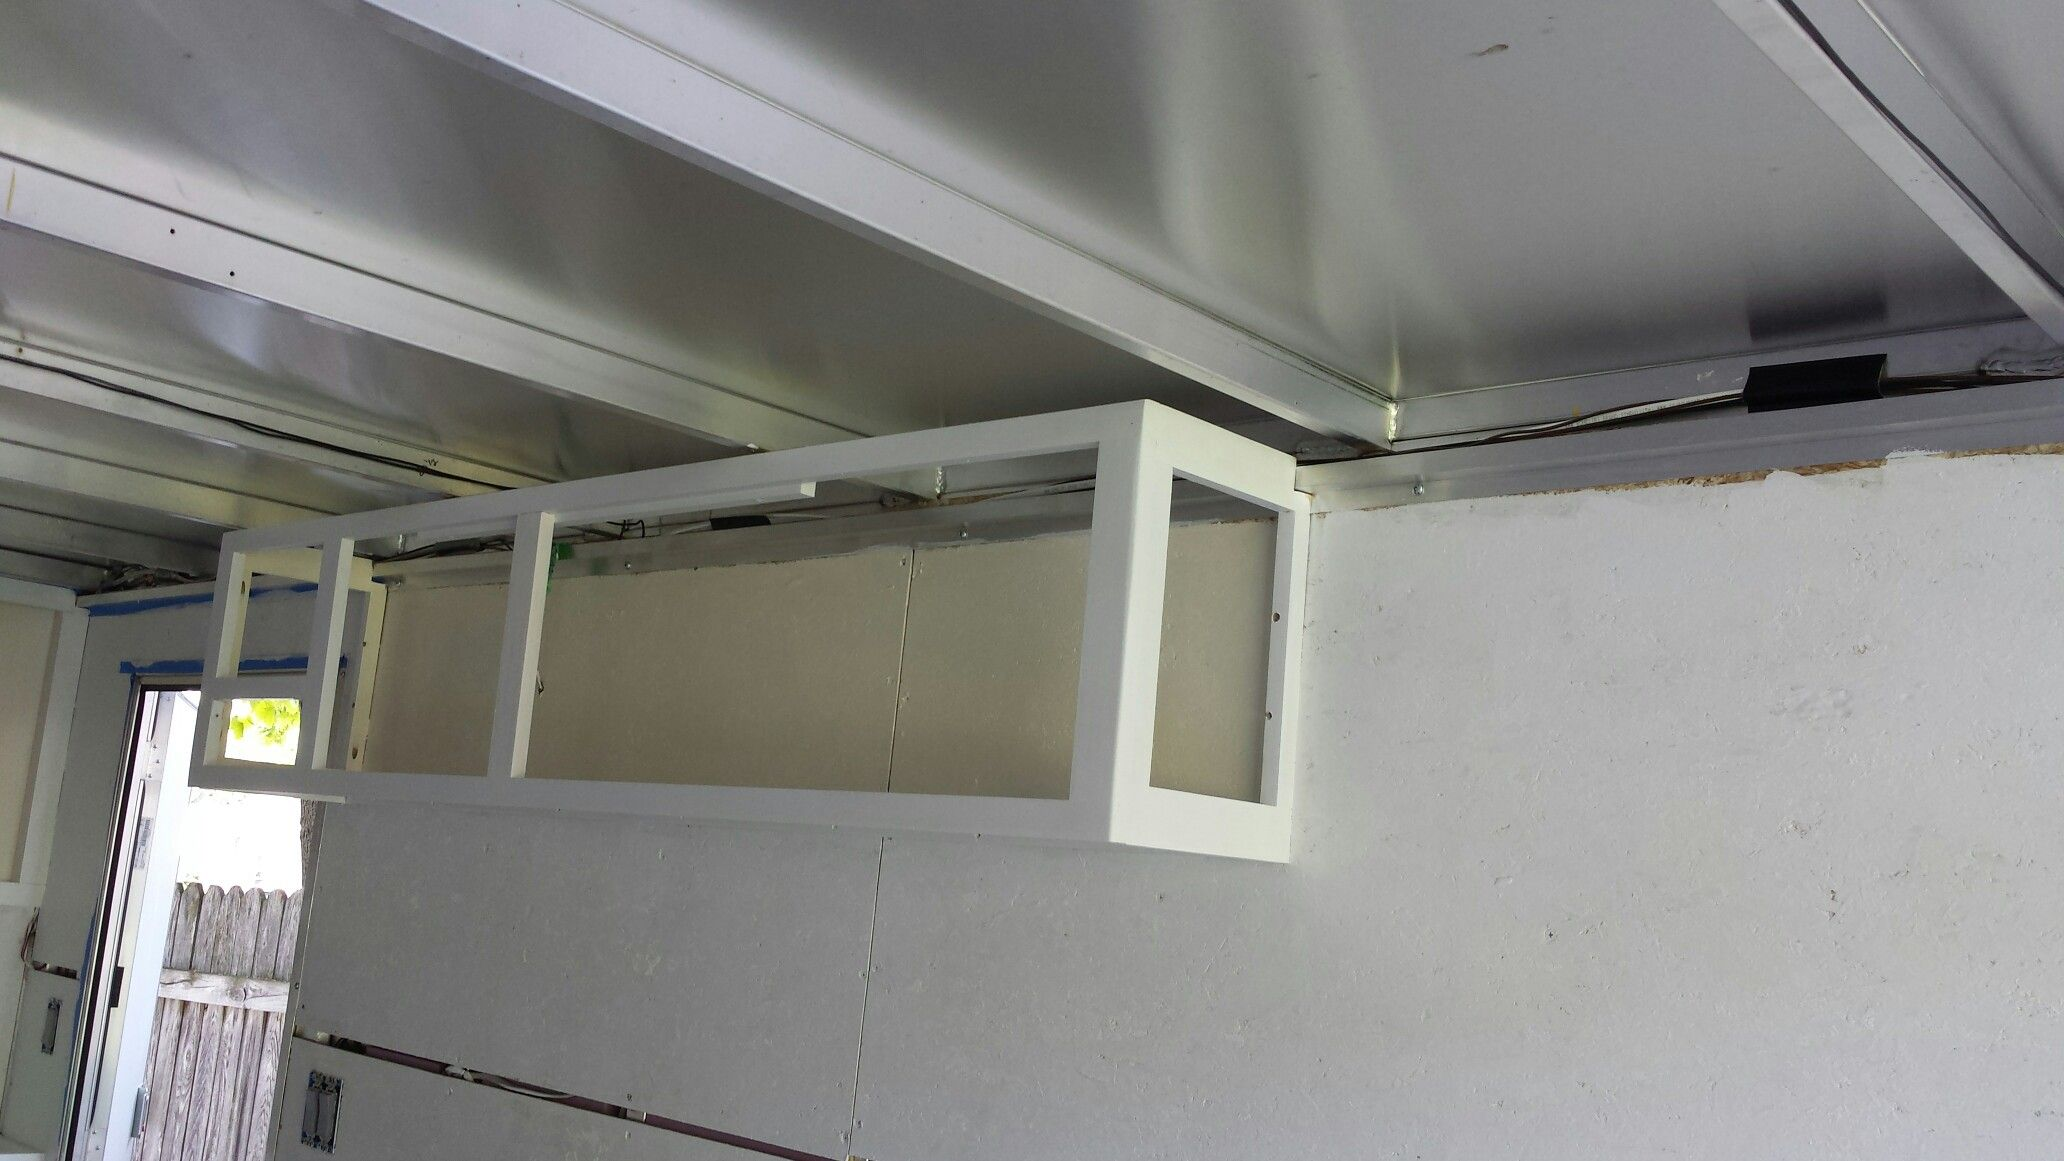 Cabinets For Cargo Trailers Frame For Upperswill Hold Stereo Speakers N Cabinets Cargo